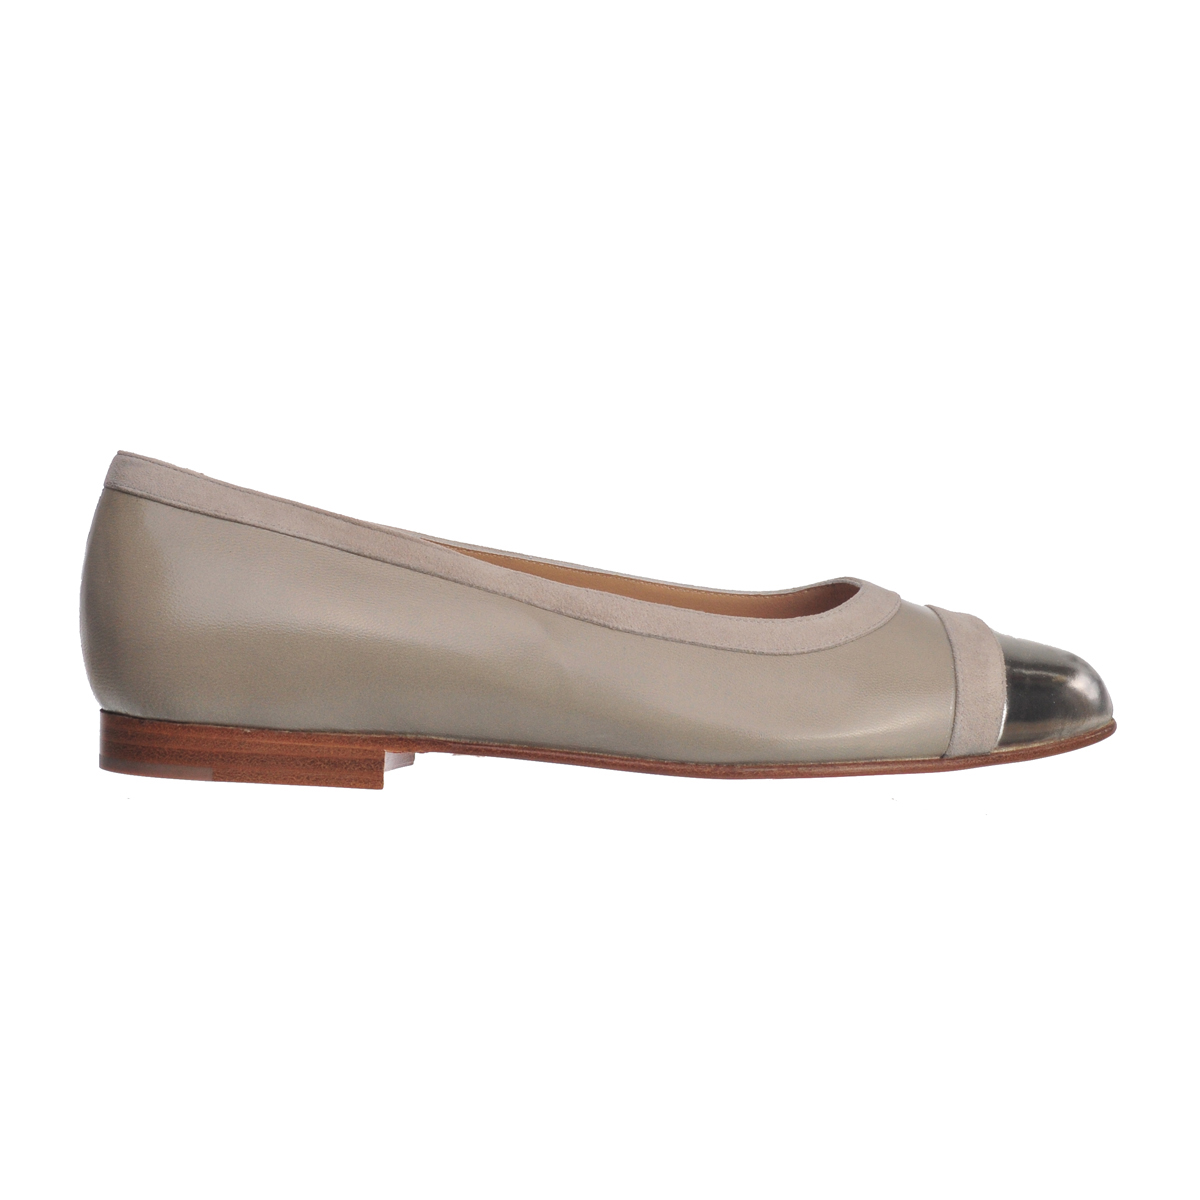 [SHOES / FLAT] DANA  (MIRROR LEATHER / SILVER) (MADE IN ITALY)